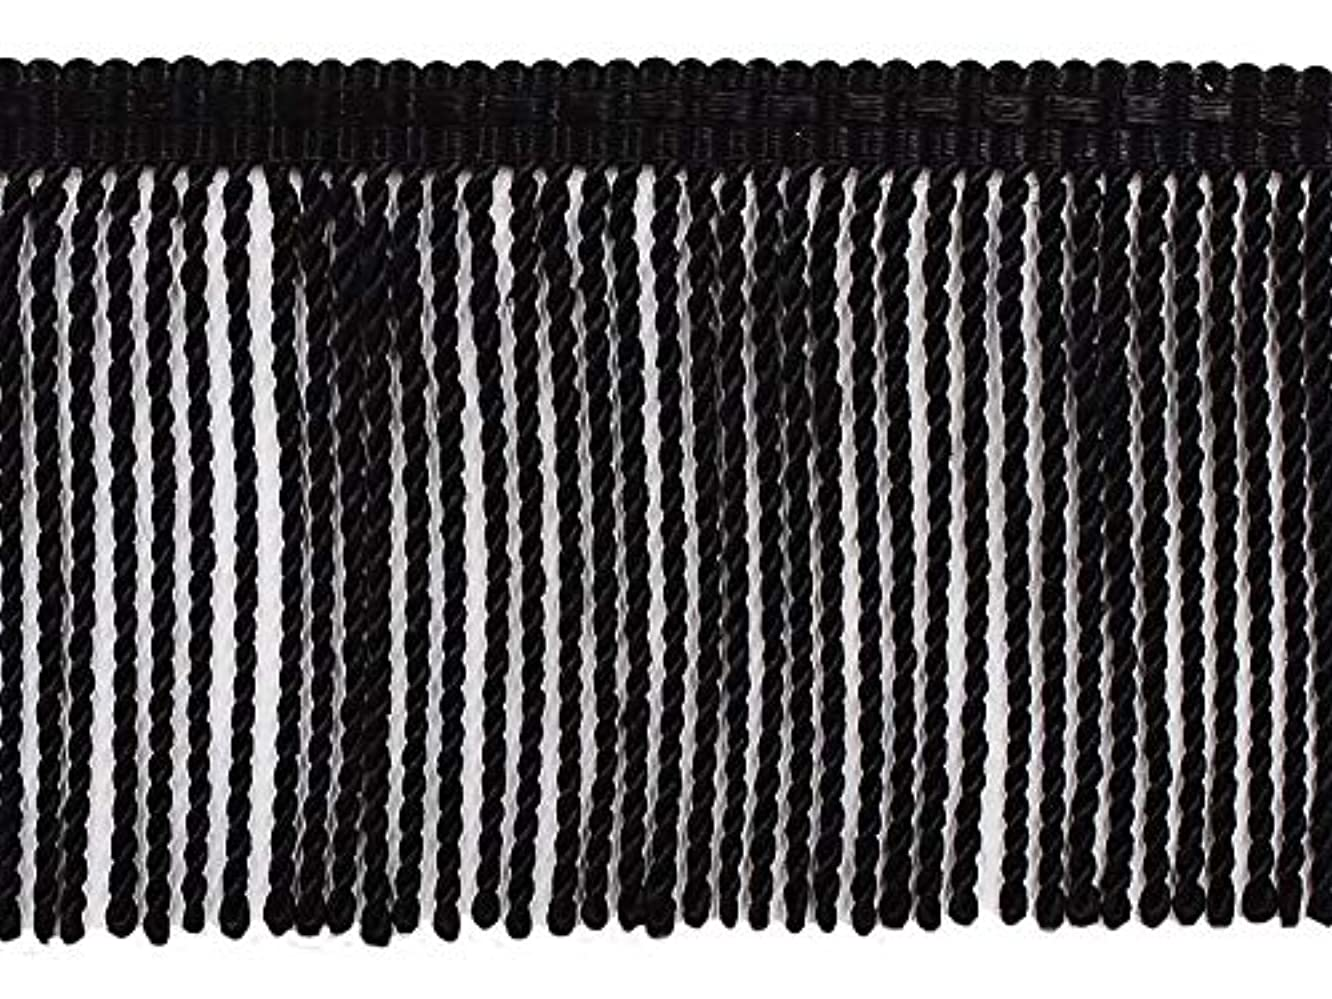 DecoPro 24 Yard Package - 3 Inch Long Black Thin Bullion Fringe Trim, Style# BFTC3 Color: K9 (72 Ft / 21.9 Meters)